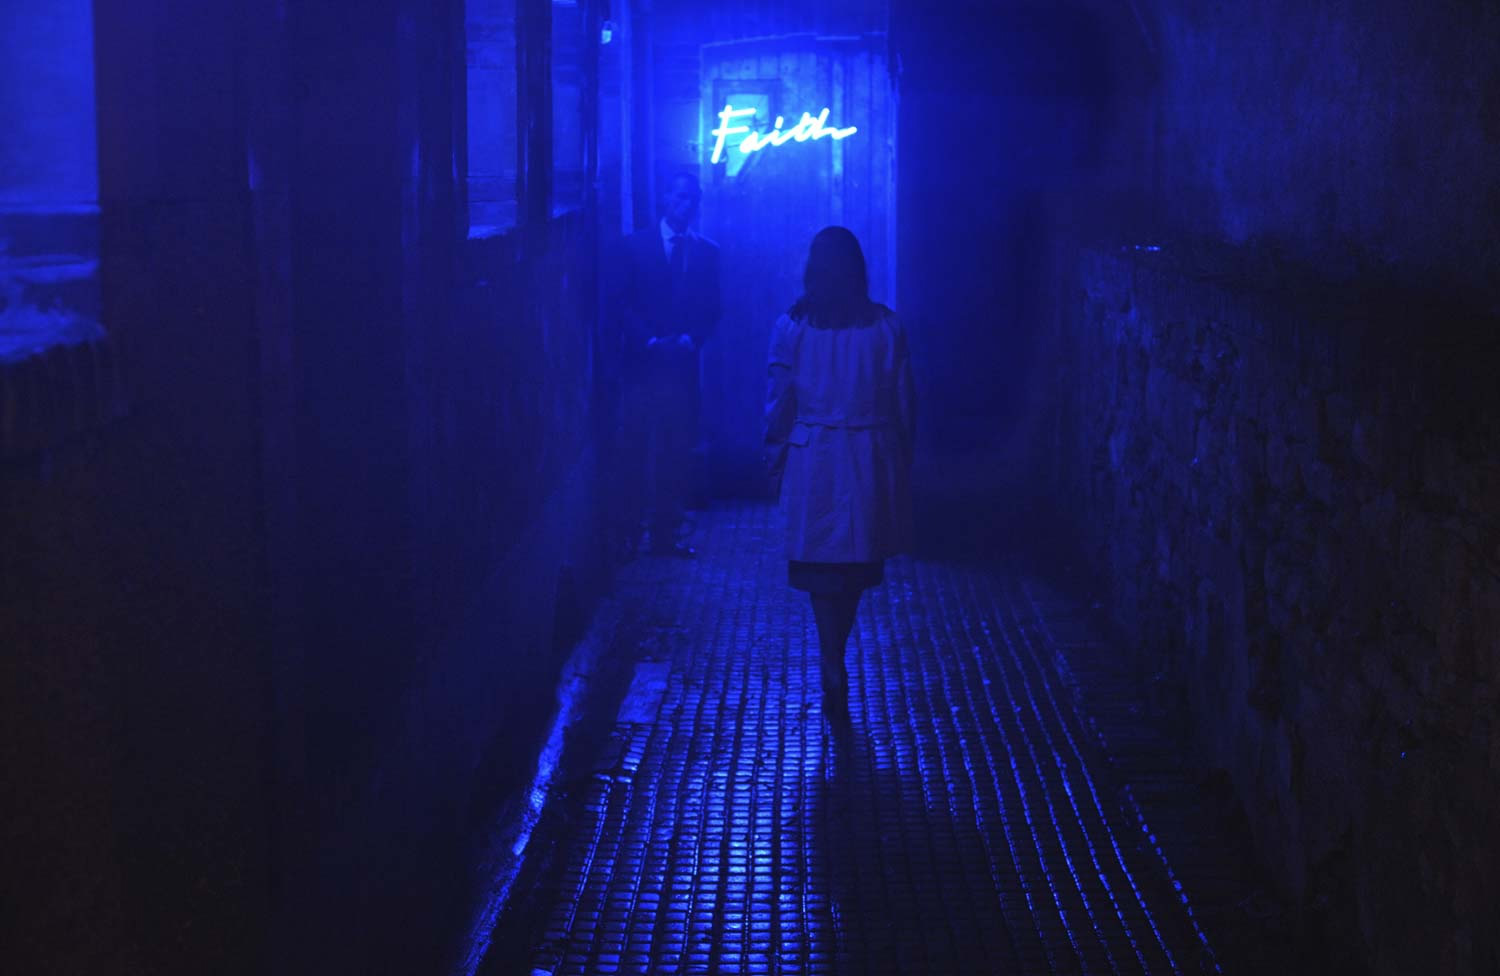 woman walking down alley, blut lighting. Alleluia movie